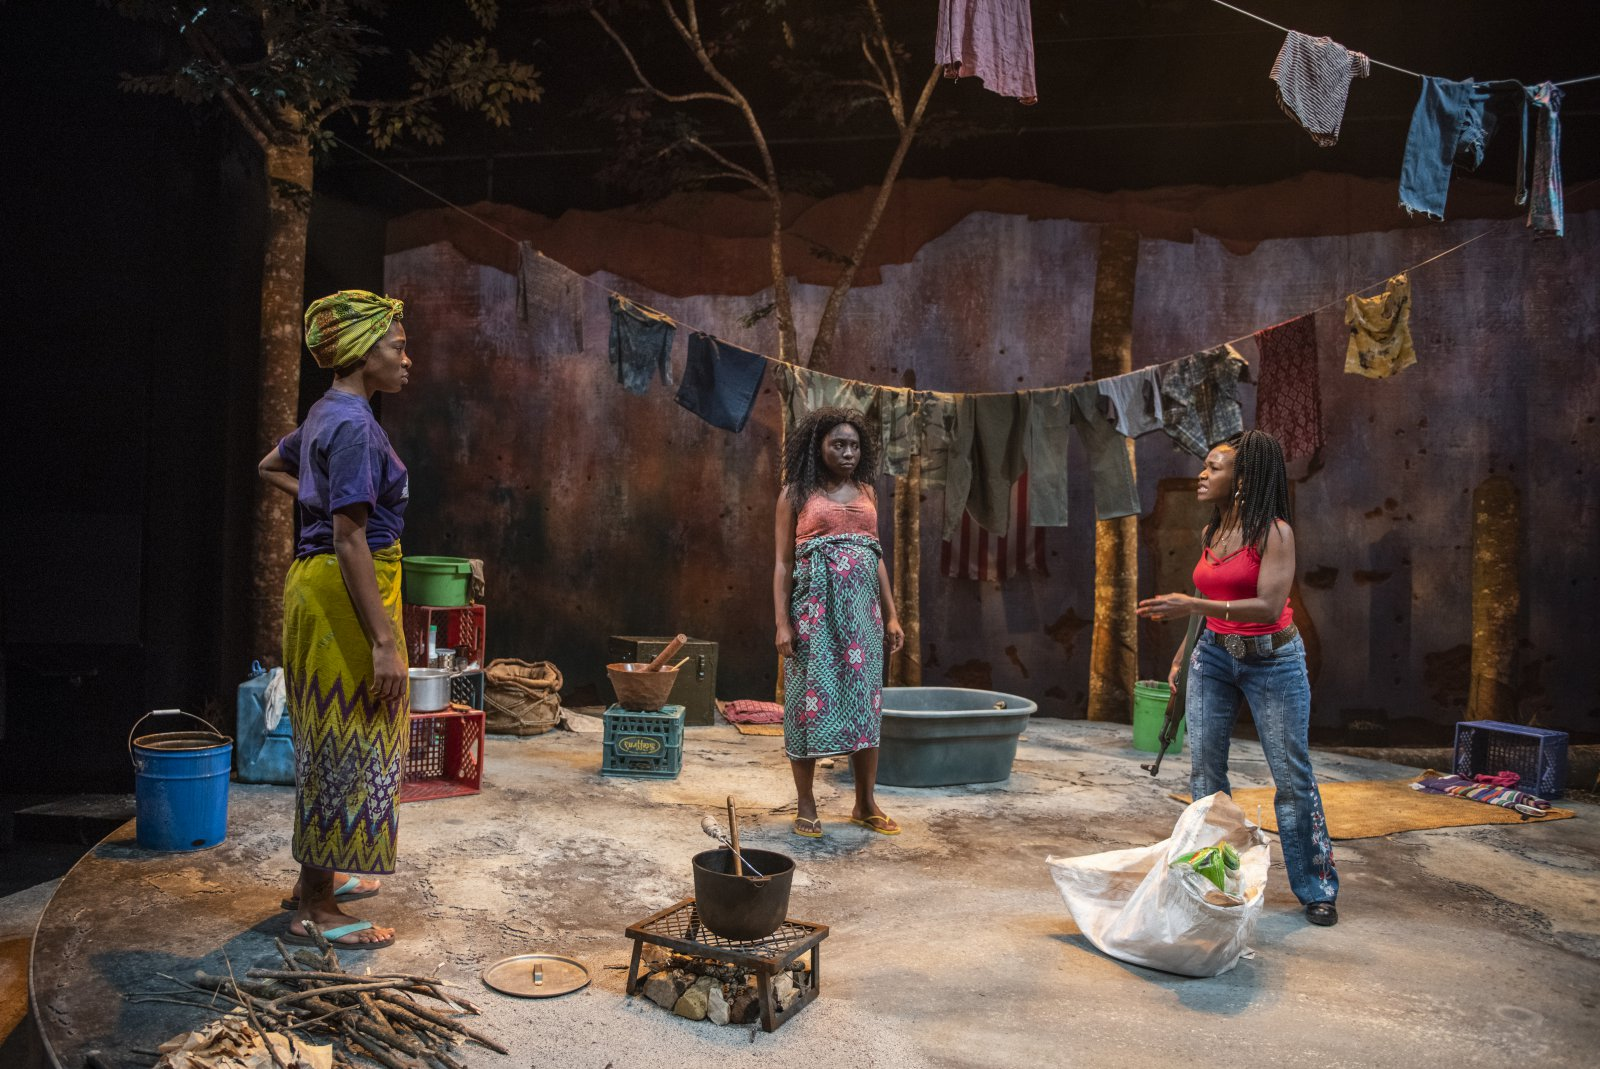 Milwaukee Repertory Theater presents Eclipsed in the Quadracci Powerhouse March 3 – March 29, 2020. Left to right: Jacqueline Nwabueze, Sola Thompson and Ashleigh Awusie.